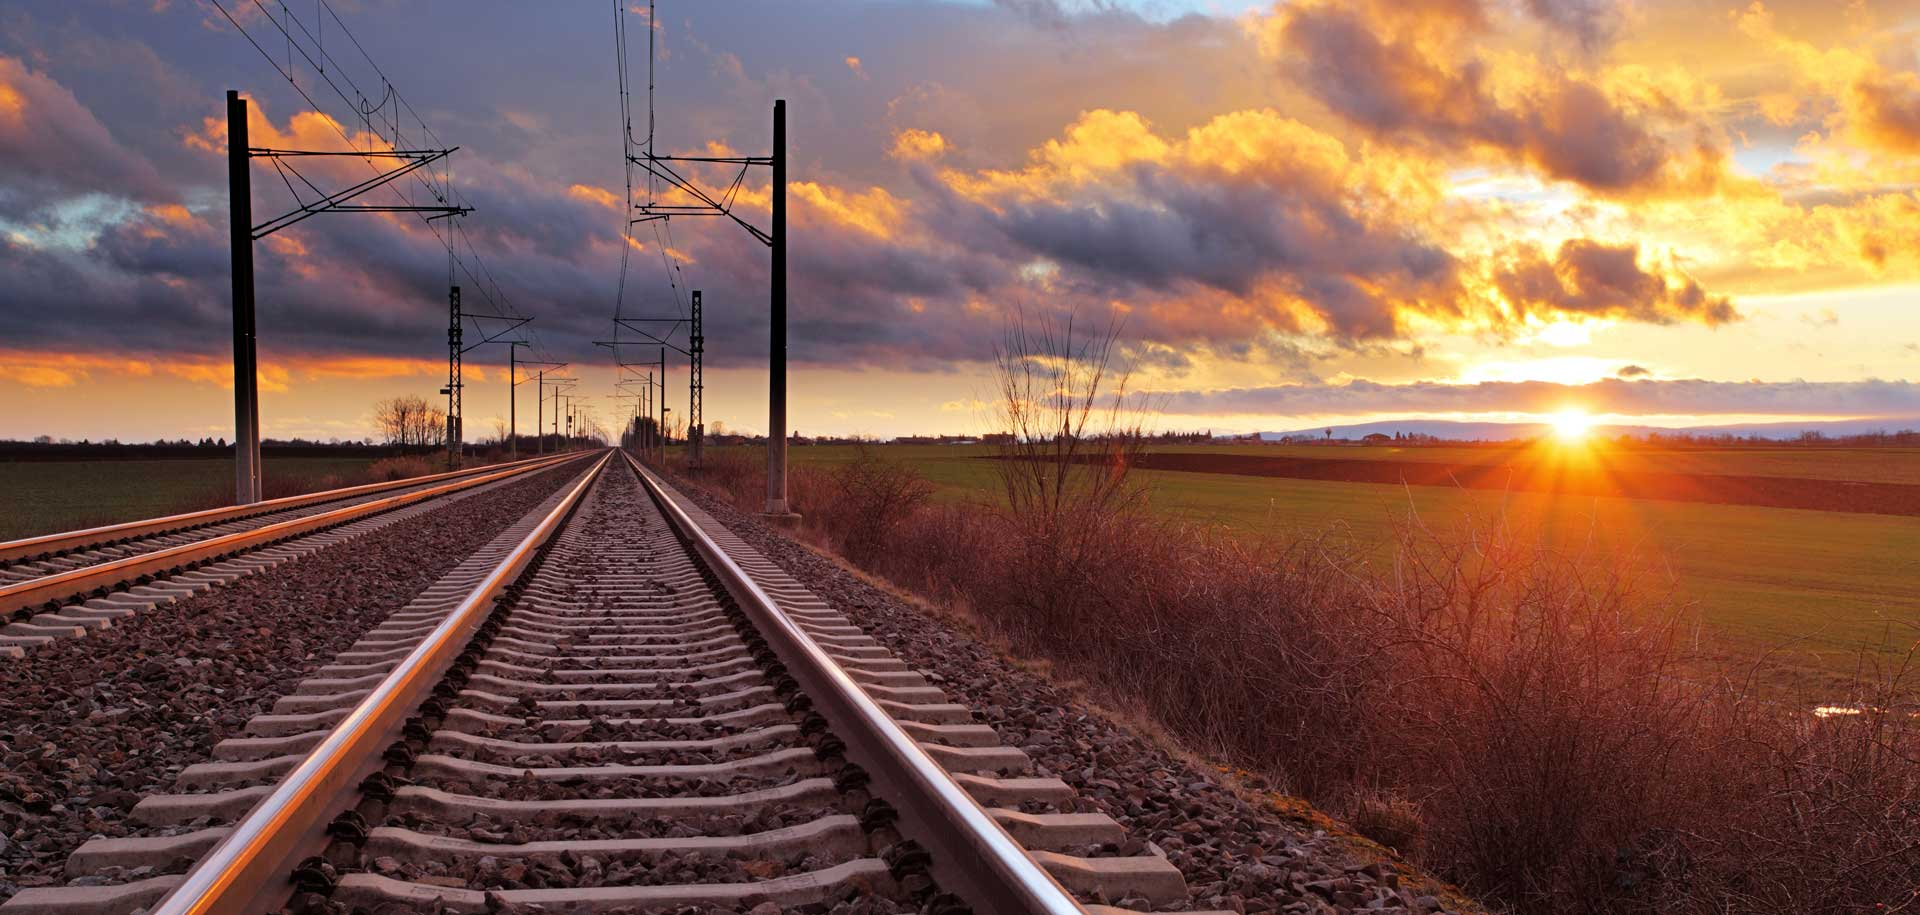 Railway tracks with sunset in background